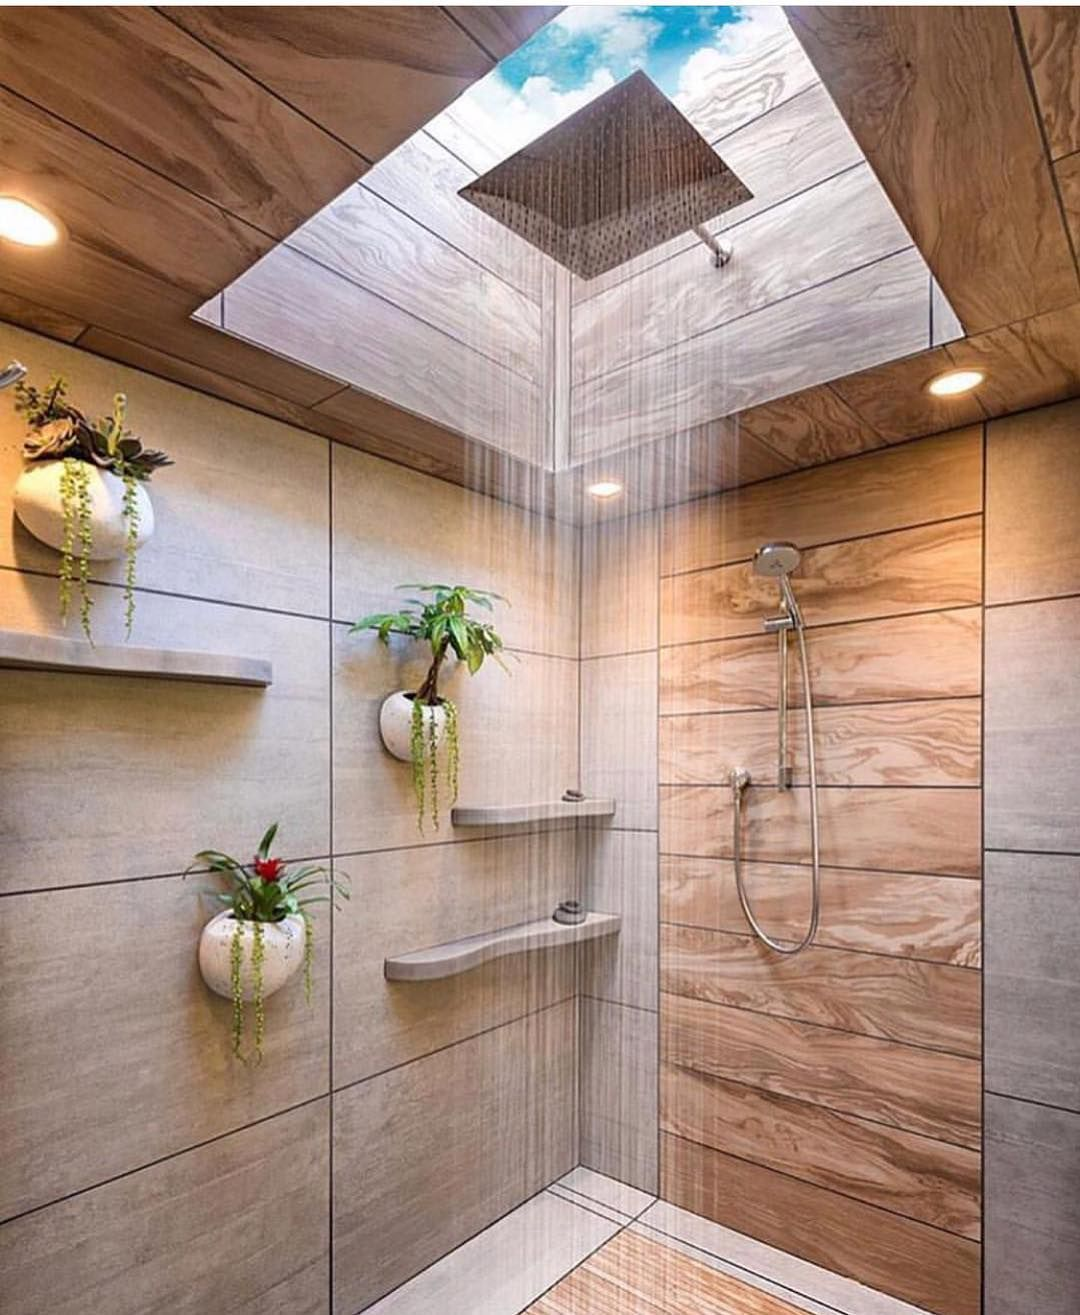 Bathrooms of instagram insta  photos and videos best home interior design also rh pinterest